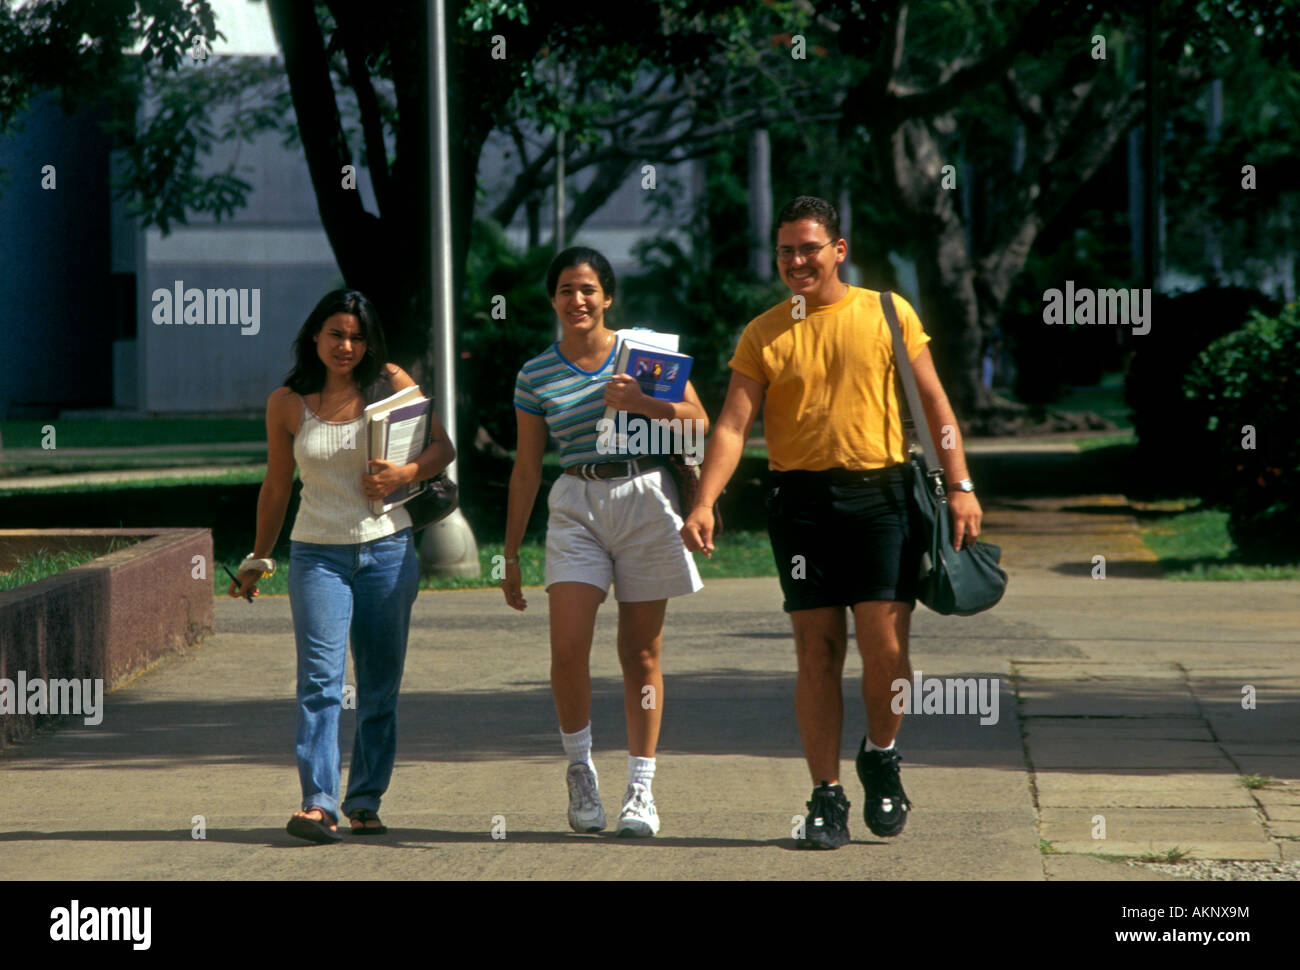 3, Puerto Ricans, Puerto Rican students, college students, university students, students, campus, University of - Stock Image